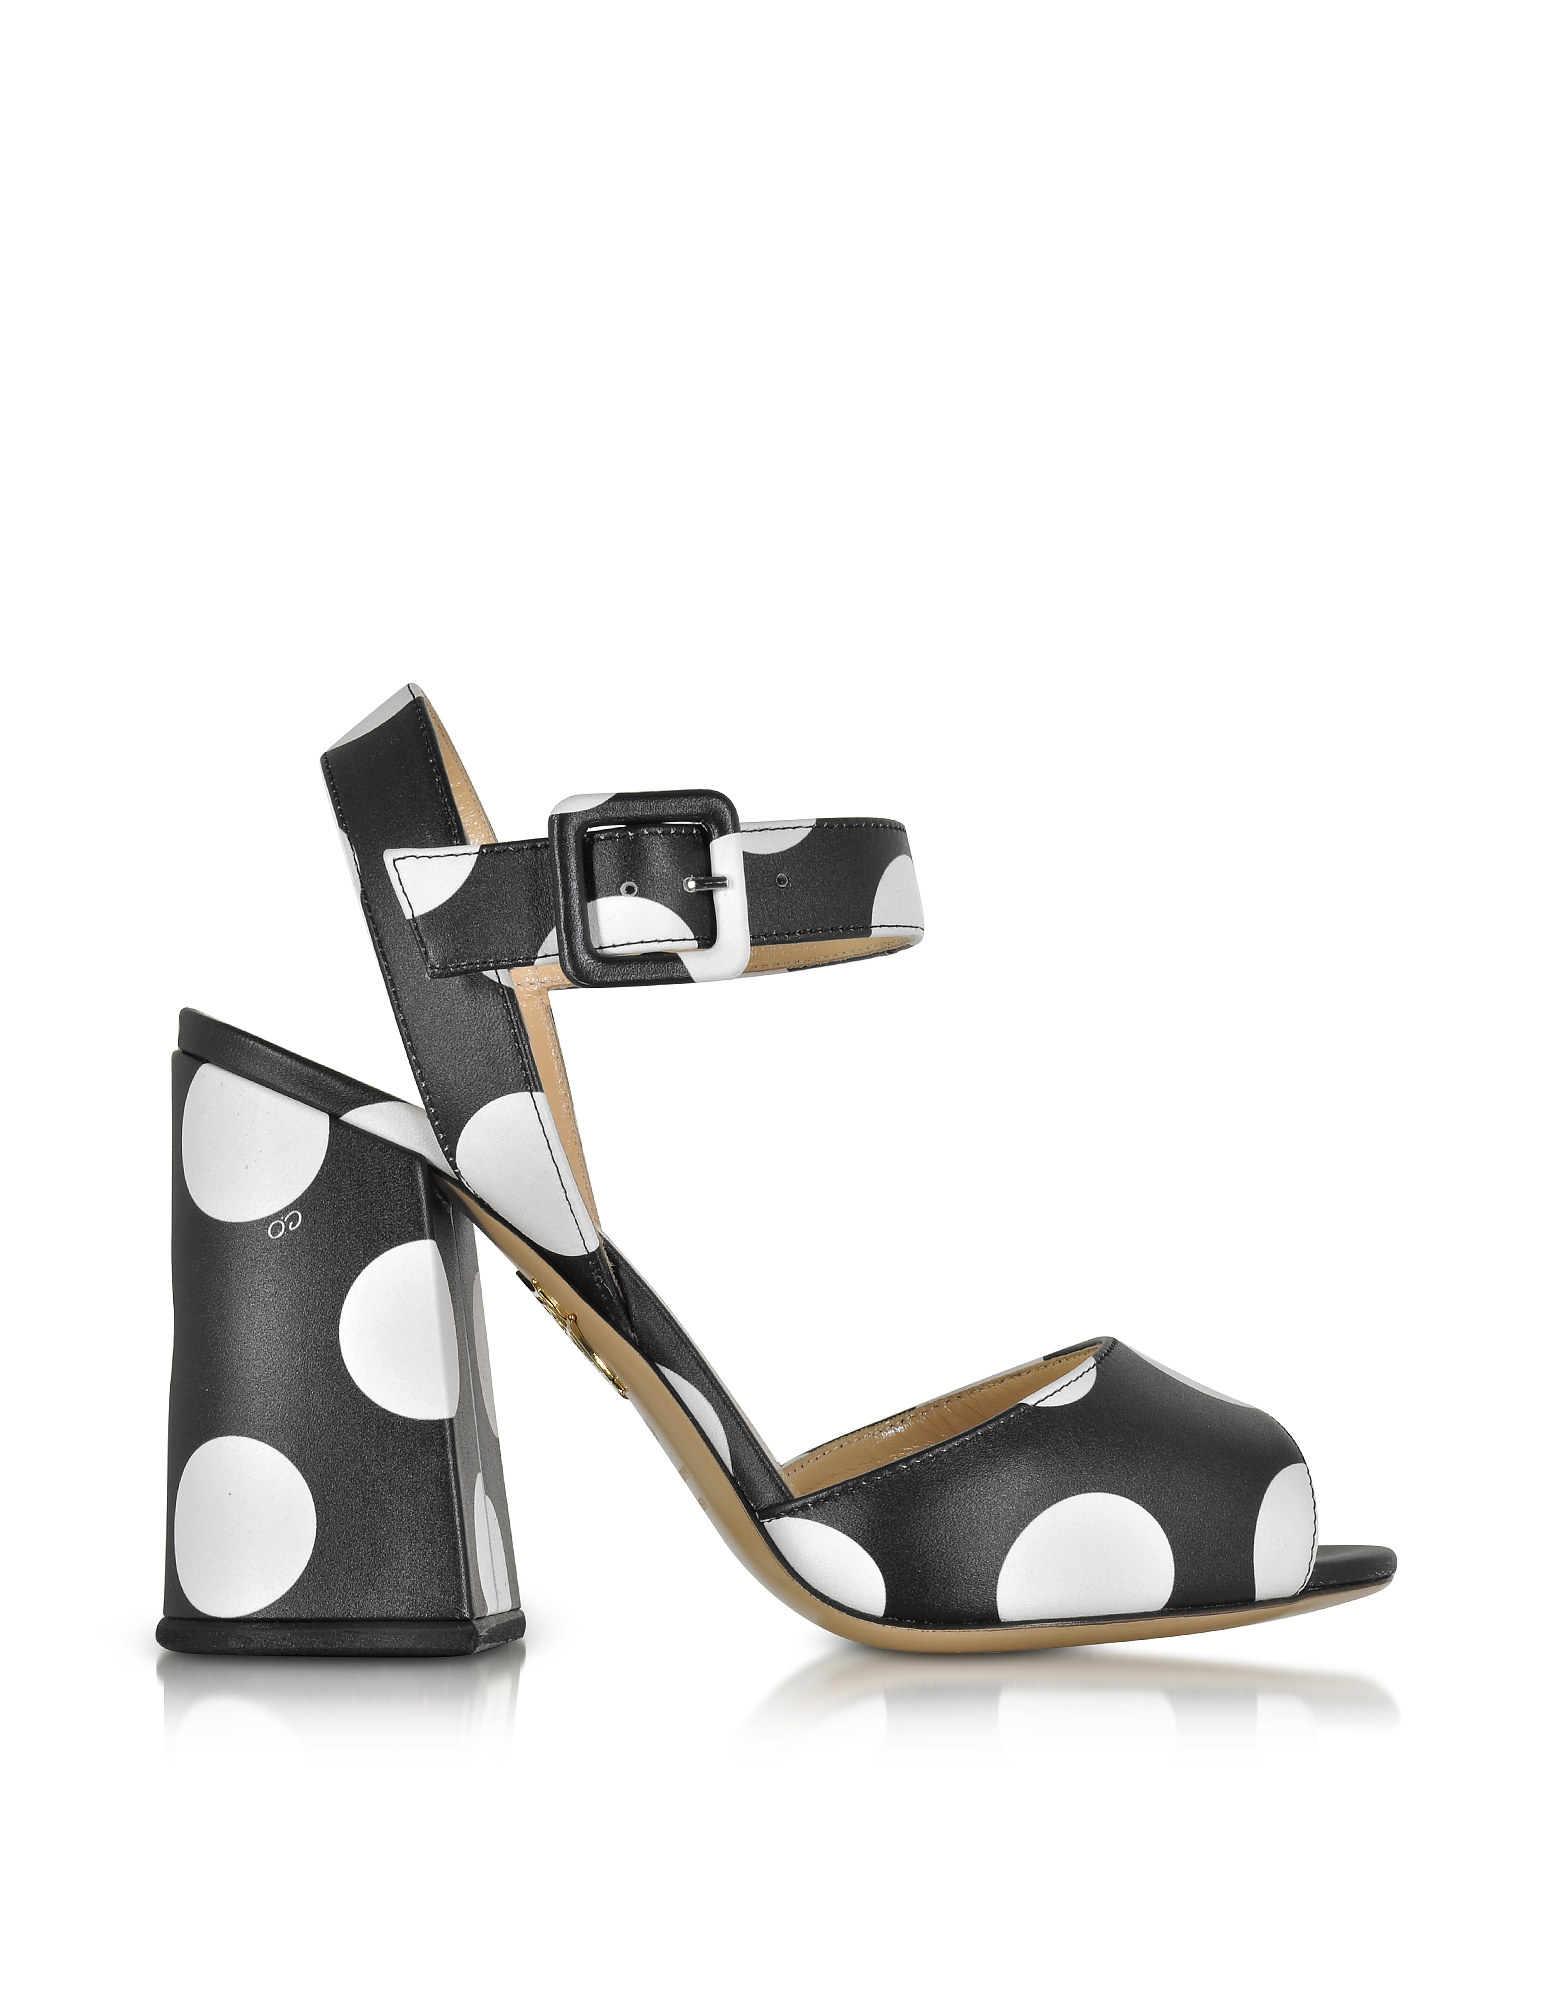 Charlotte Olympia Designer Shoes, Emma Black Polka Dot Print Leather Sandal